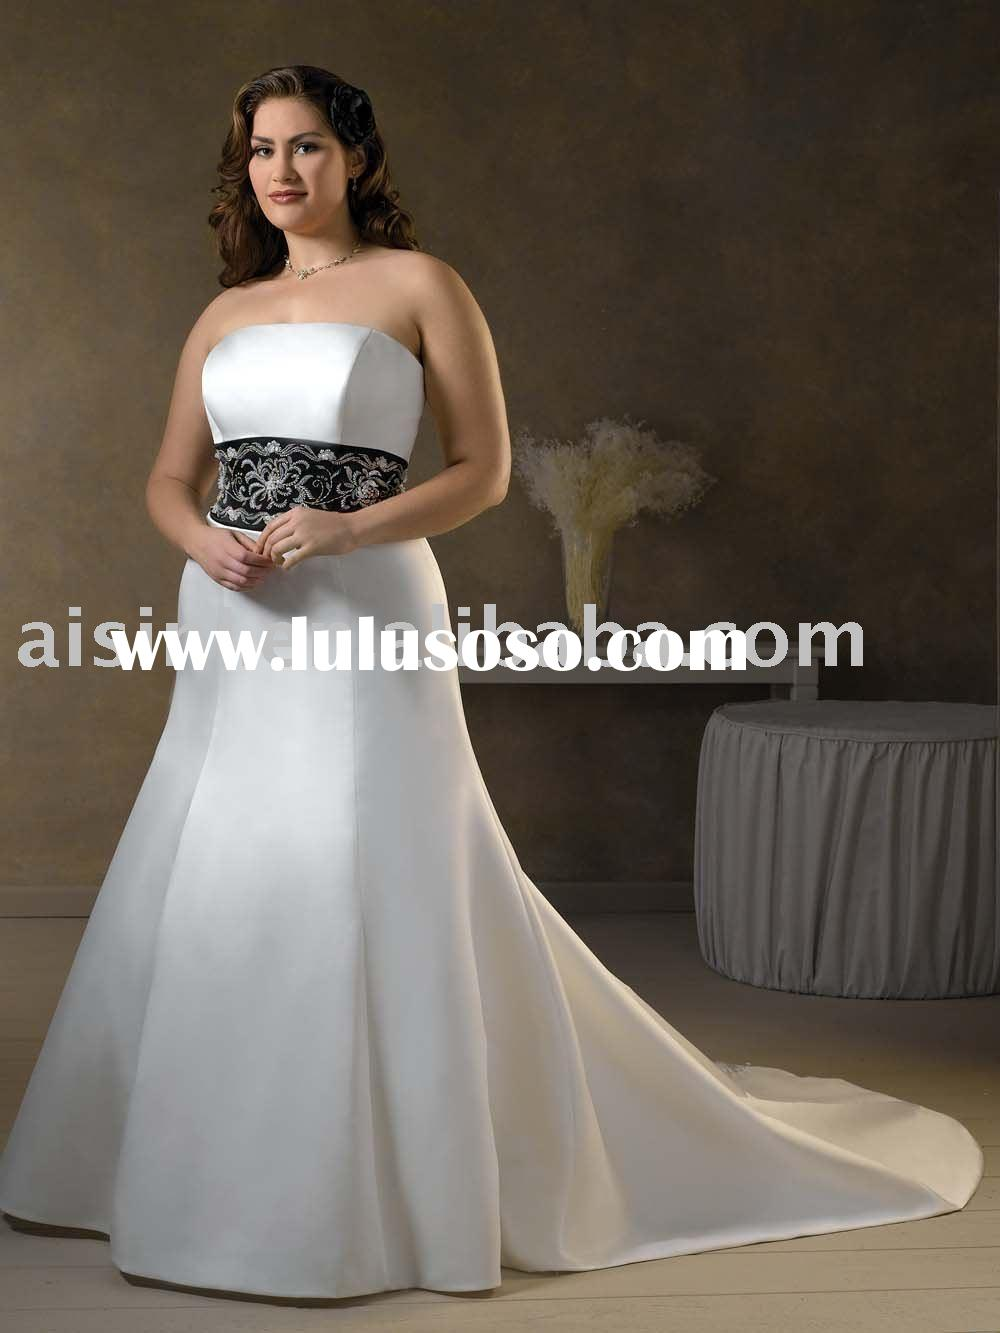 Bonny Bridal, Style 1019 wedding dress, Unforgetable Plus Size A-line Satin wedding gowns